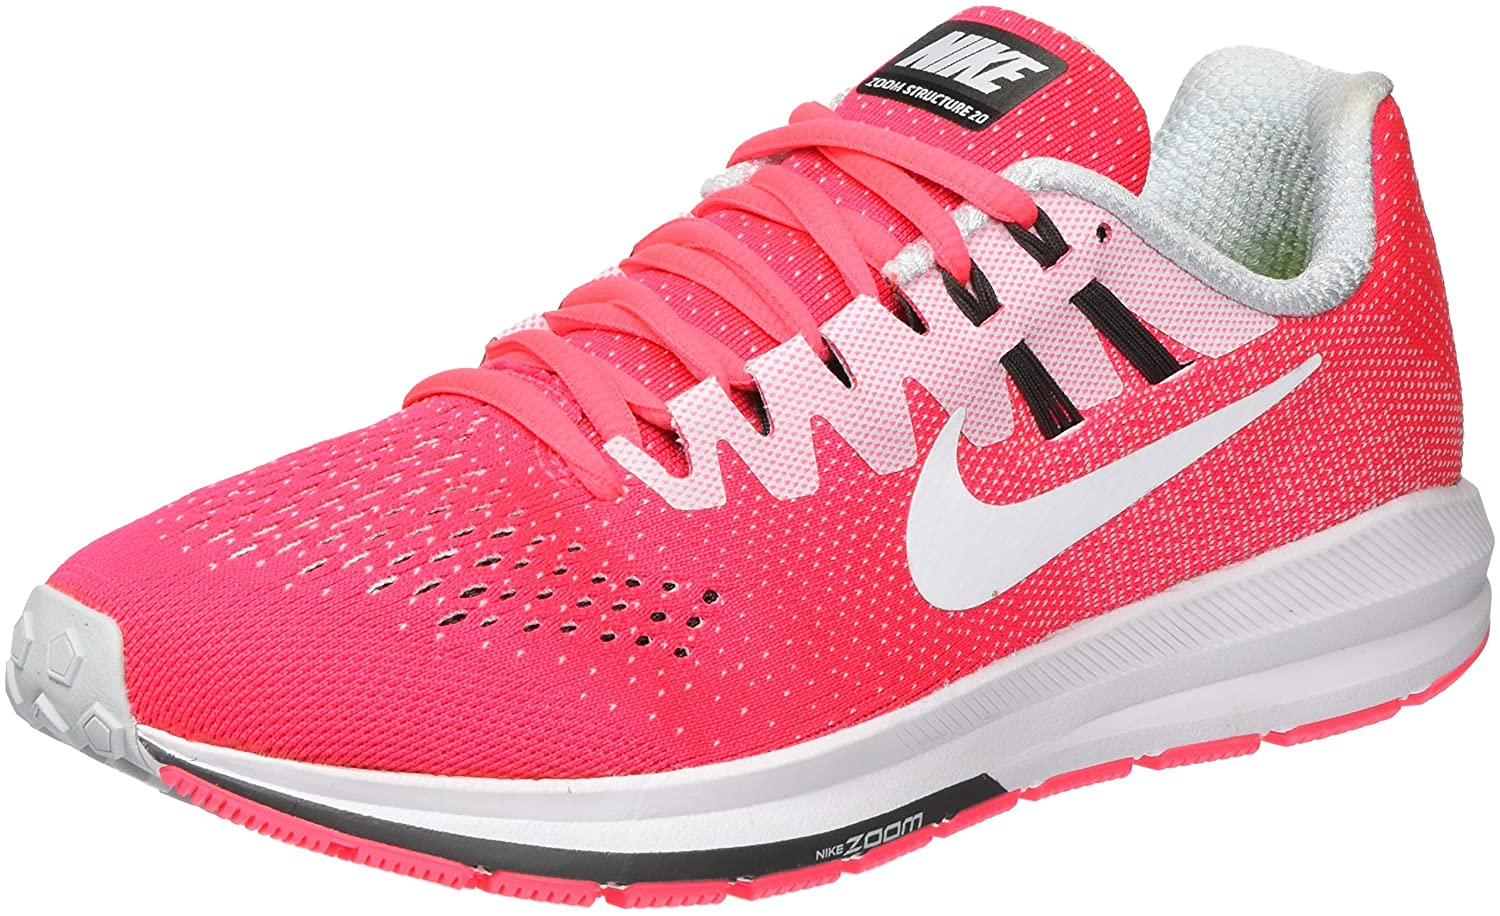 NIKE Women's Air Zoom Structure 20 Running Shoe B06XTMTCFP 11 B(M) US|Racer Pink/White-pure Platinum